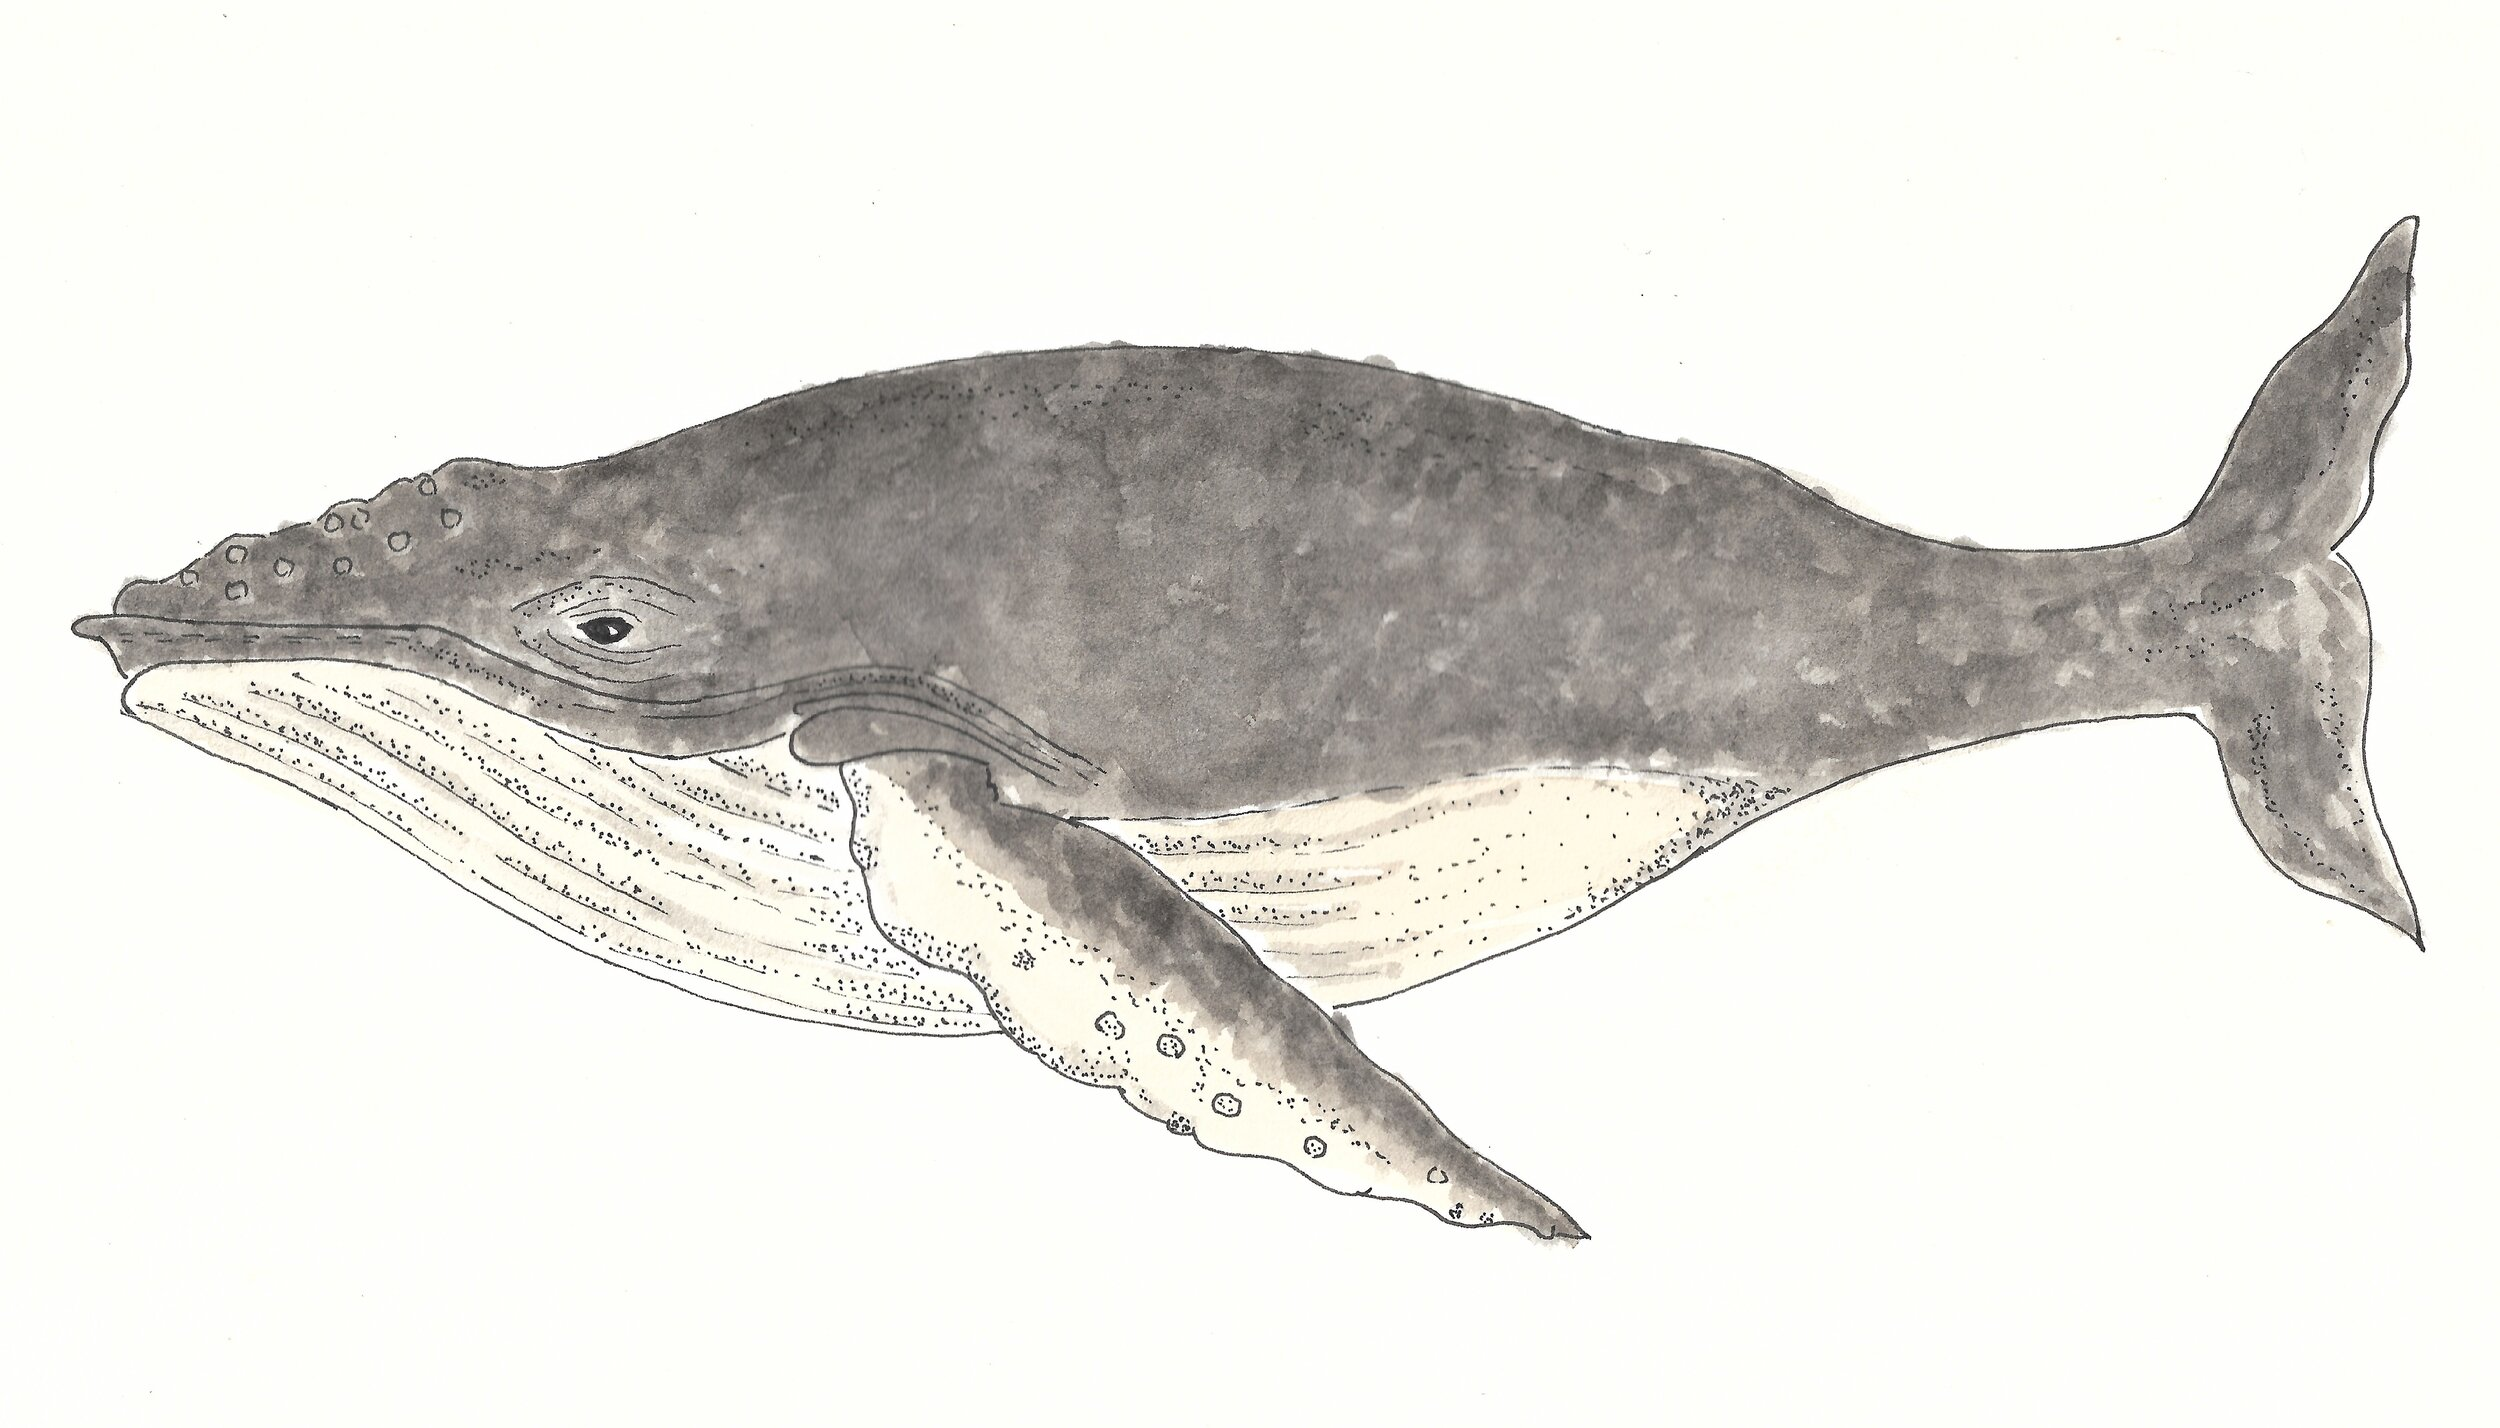 and mysticetes like the humpback whales, which forms a part of the baleen-whale family that have hair-like, mouth bristles to filter krill from the sea.